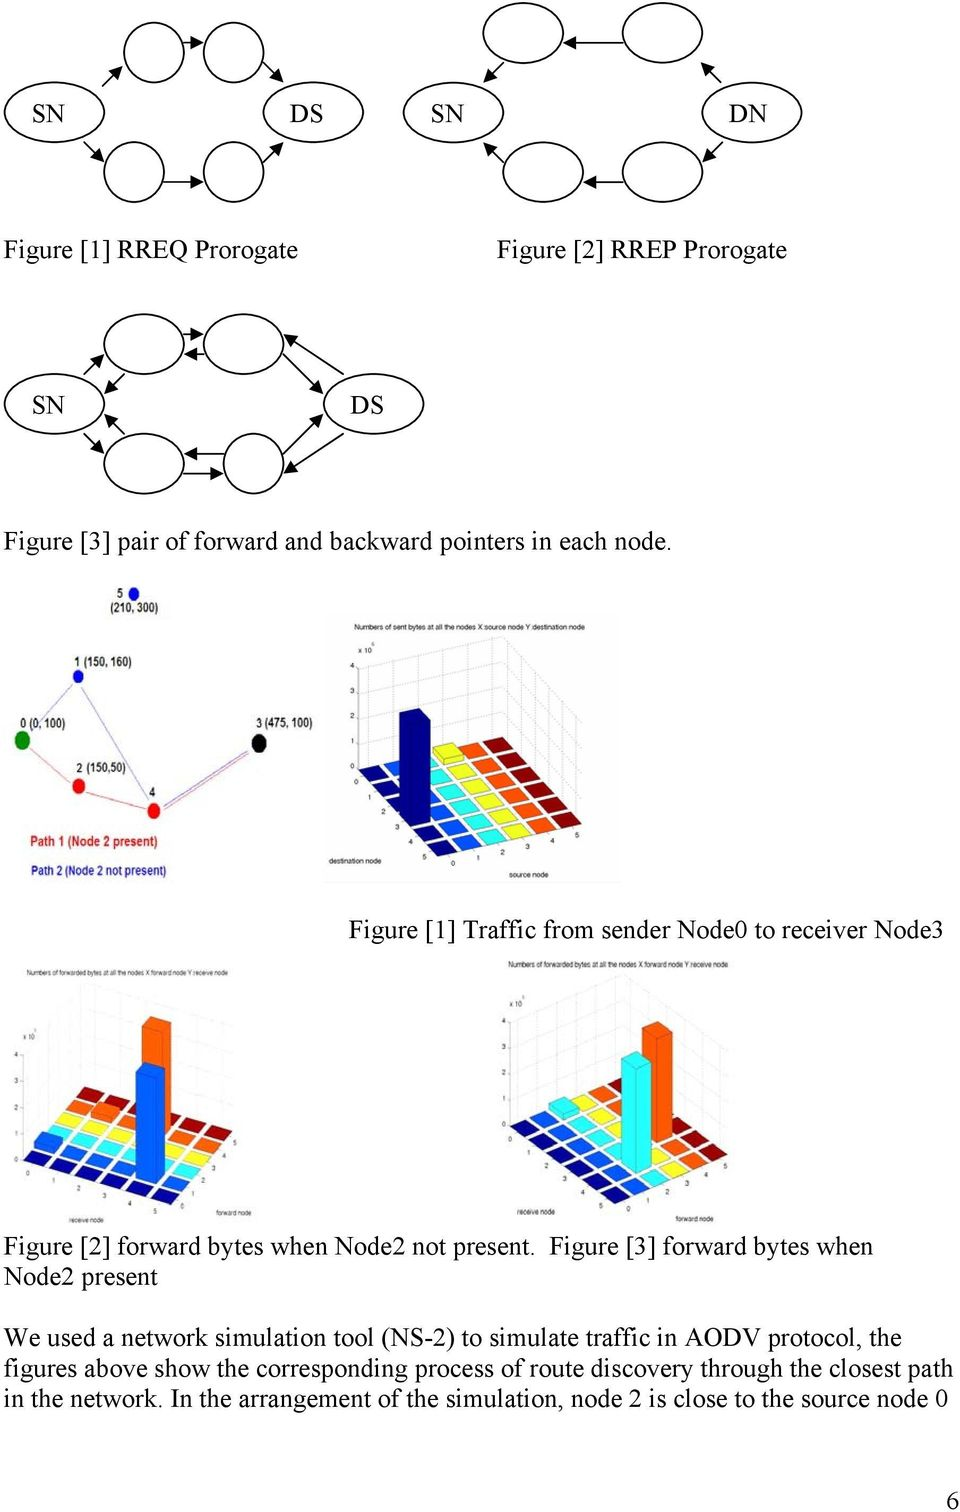 Figure [3] forward bytes when Node2 present We used a network simulation tool (NS-2) to simulate traffic in AODV protocol, the figures